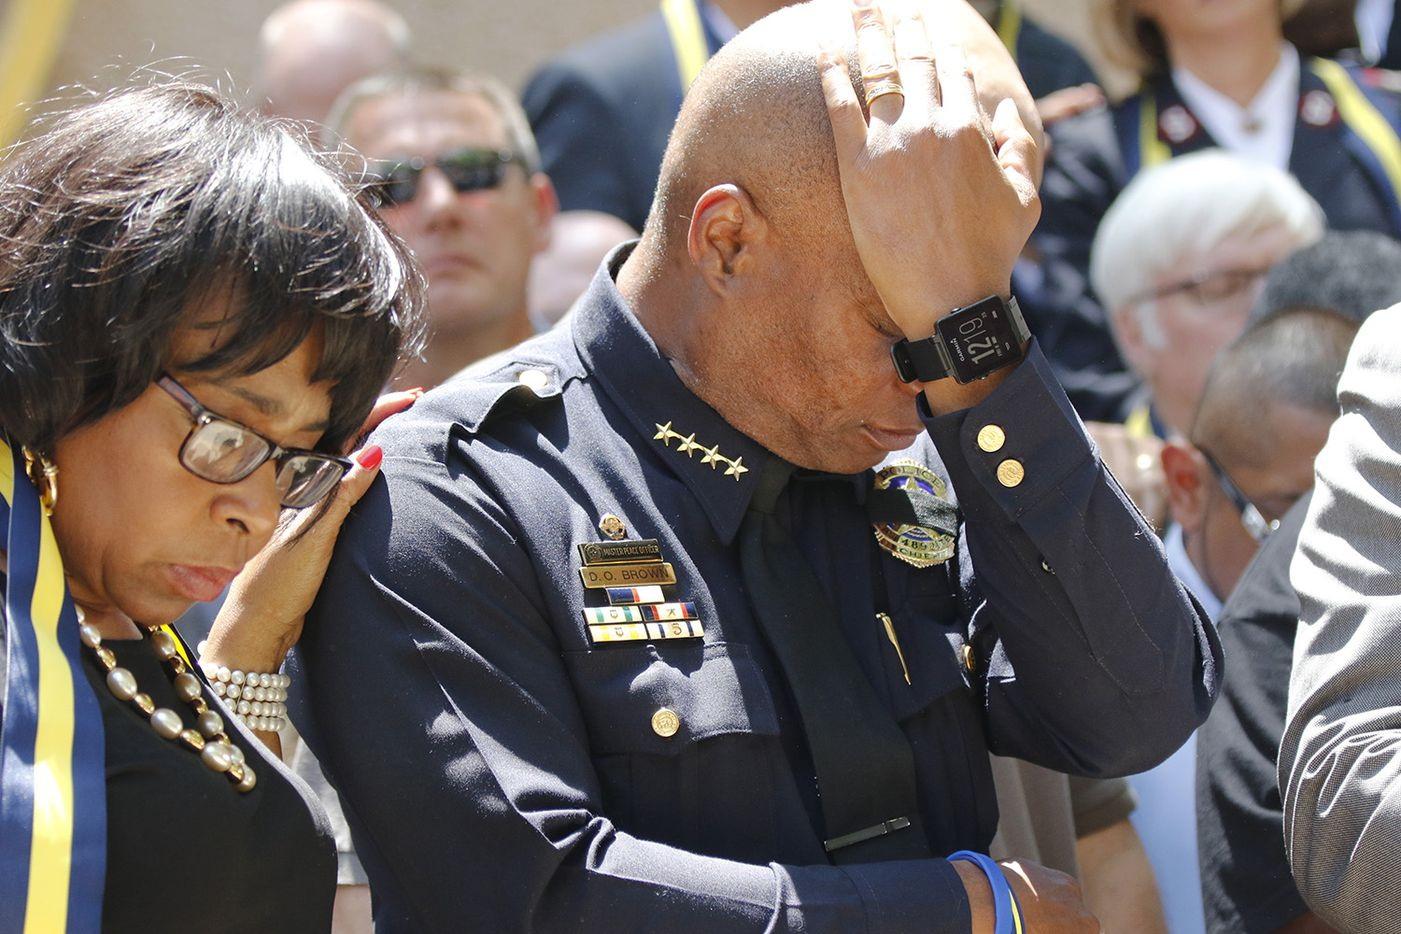 Dallas Police Chief David Brown pauses at a prayer vigil during a citywide prayer service in downtown Dallas on Friday, July 8, 2016, following the shootings during a peaceful protest on July 7, which left 5 police officers dead.